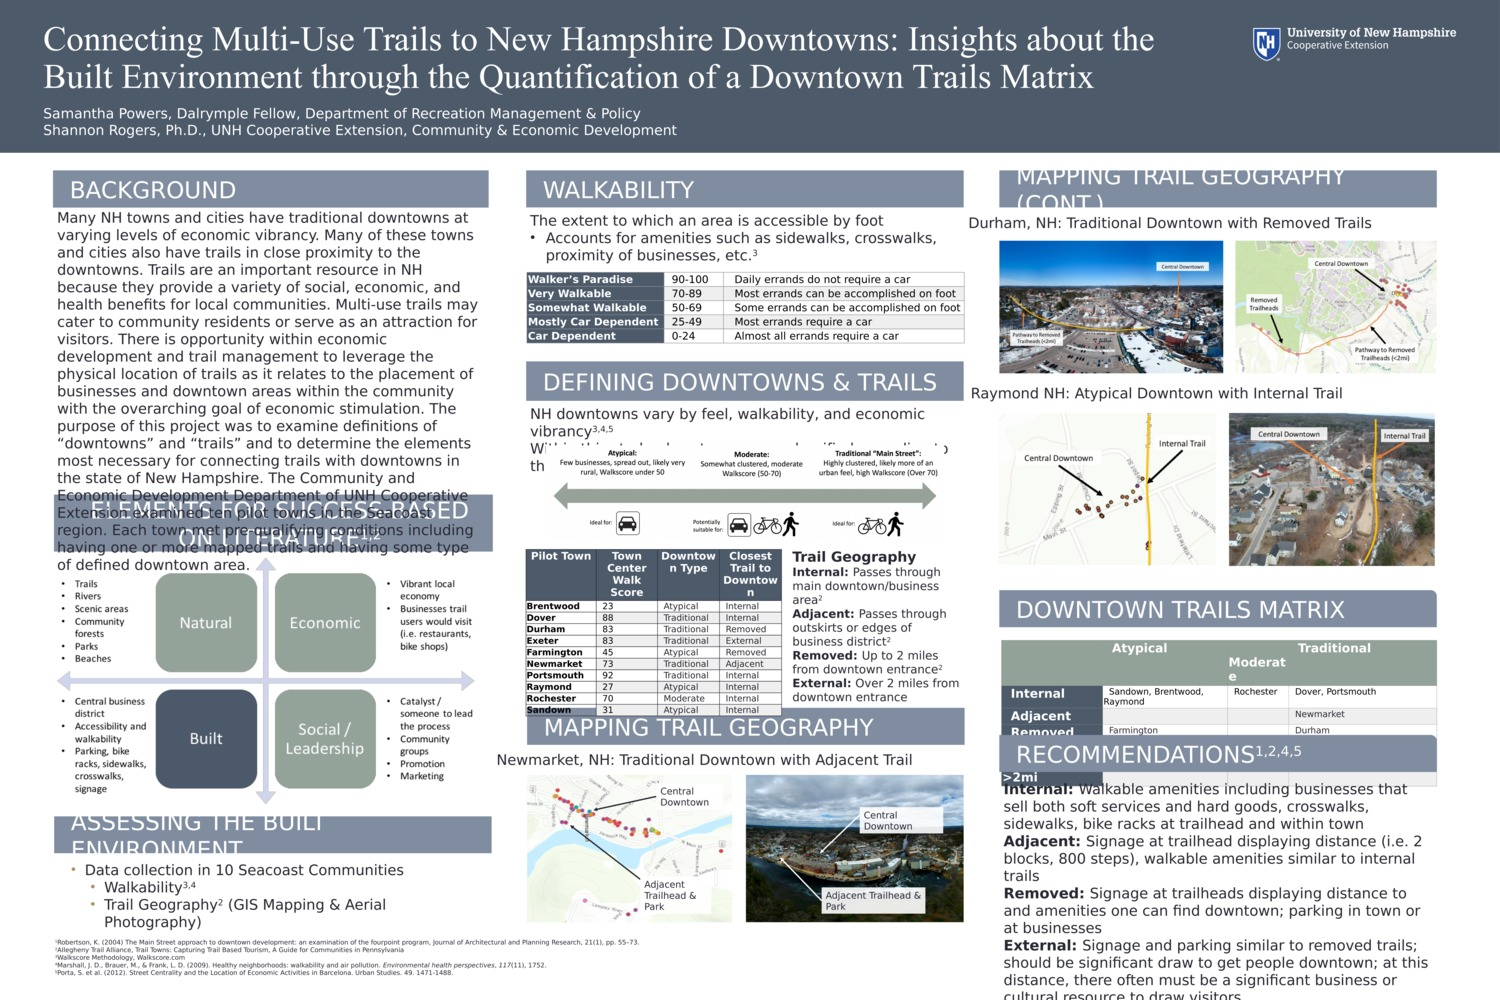 Connecting Multi-Use Trails To New Hampshire Downtowns: Insights About The Built Environment Through The Quantification Of A Downtown Trails Matrix by sld225